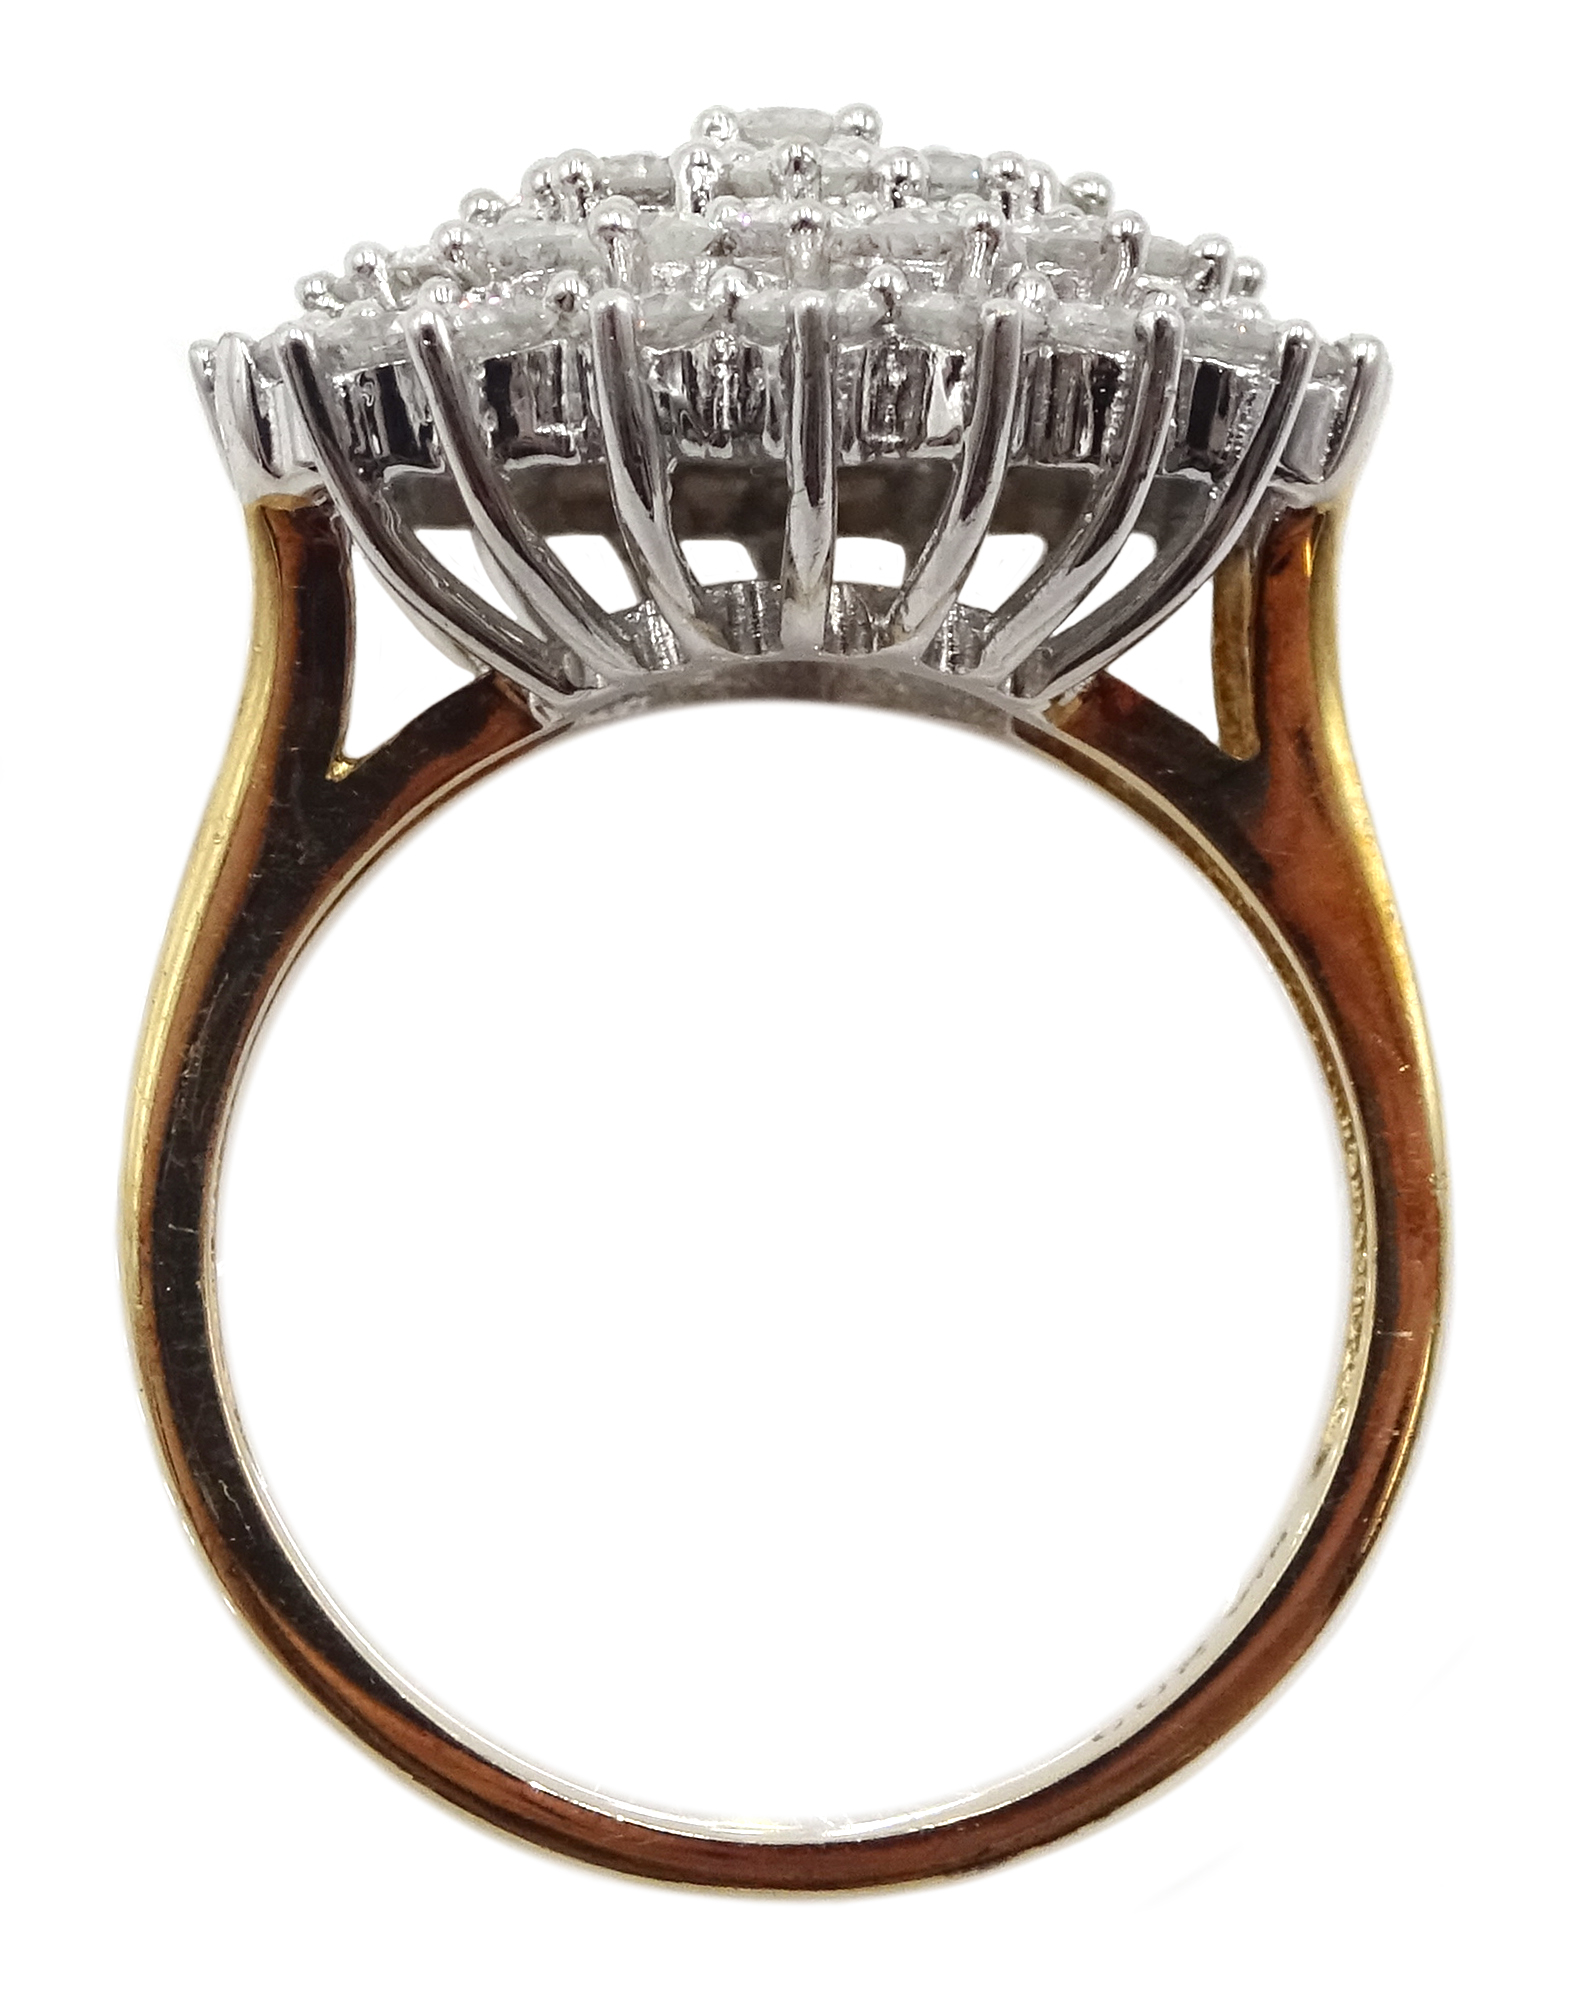 9ct gold cluster ring - Image 5 of 6